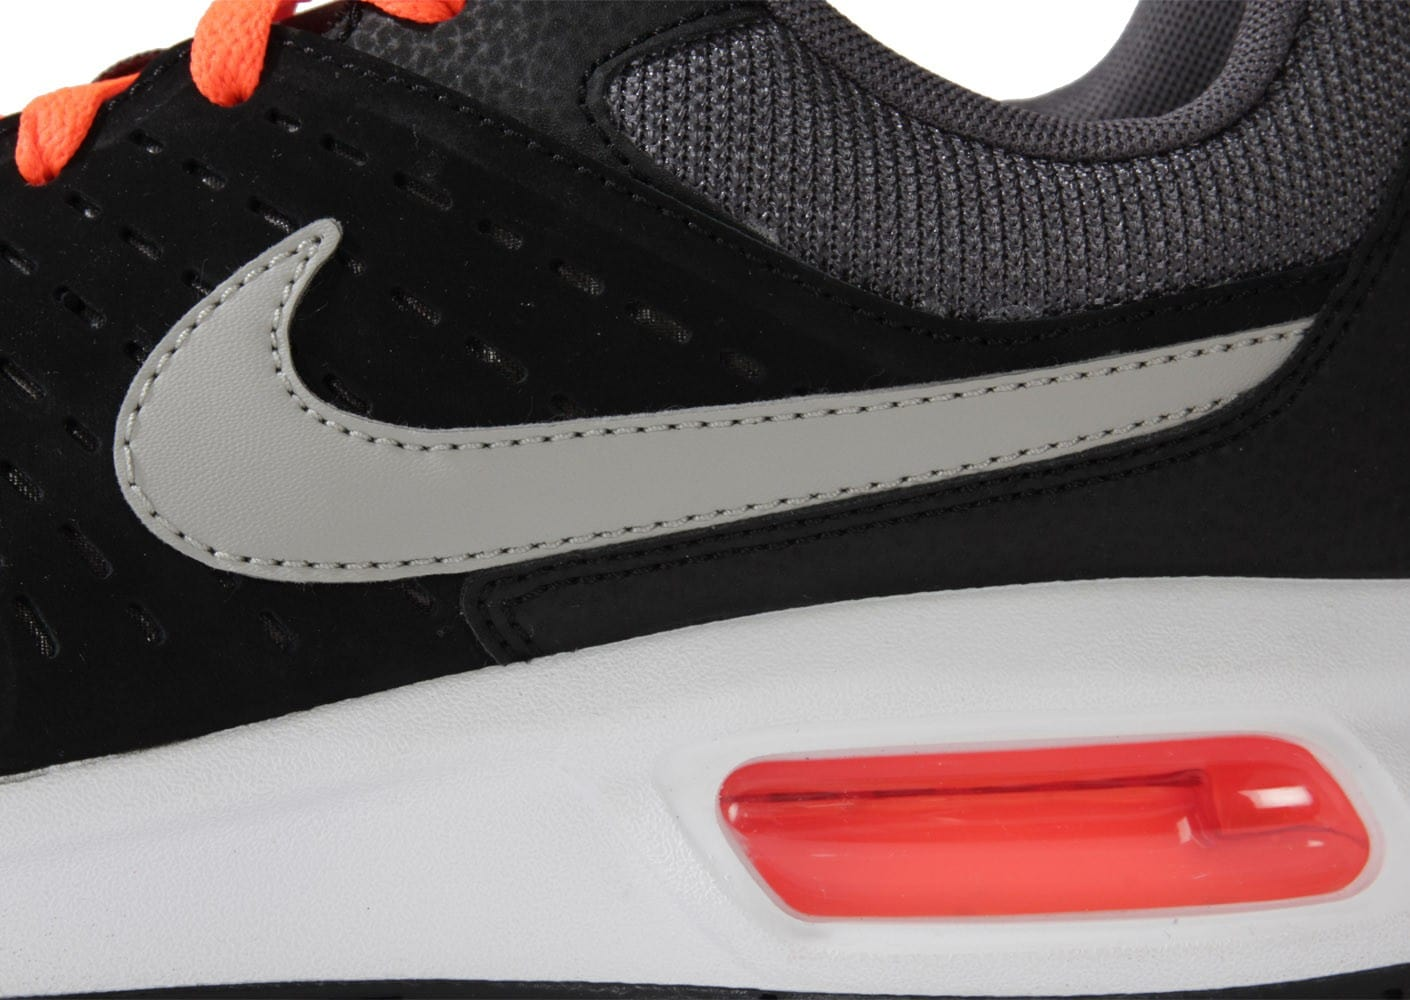 Nike Air Max Solace Grise Chaussures Baskets homme Chausport